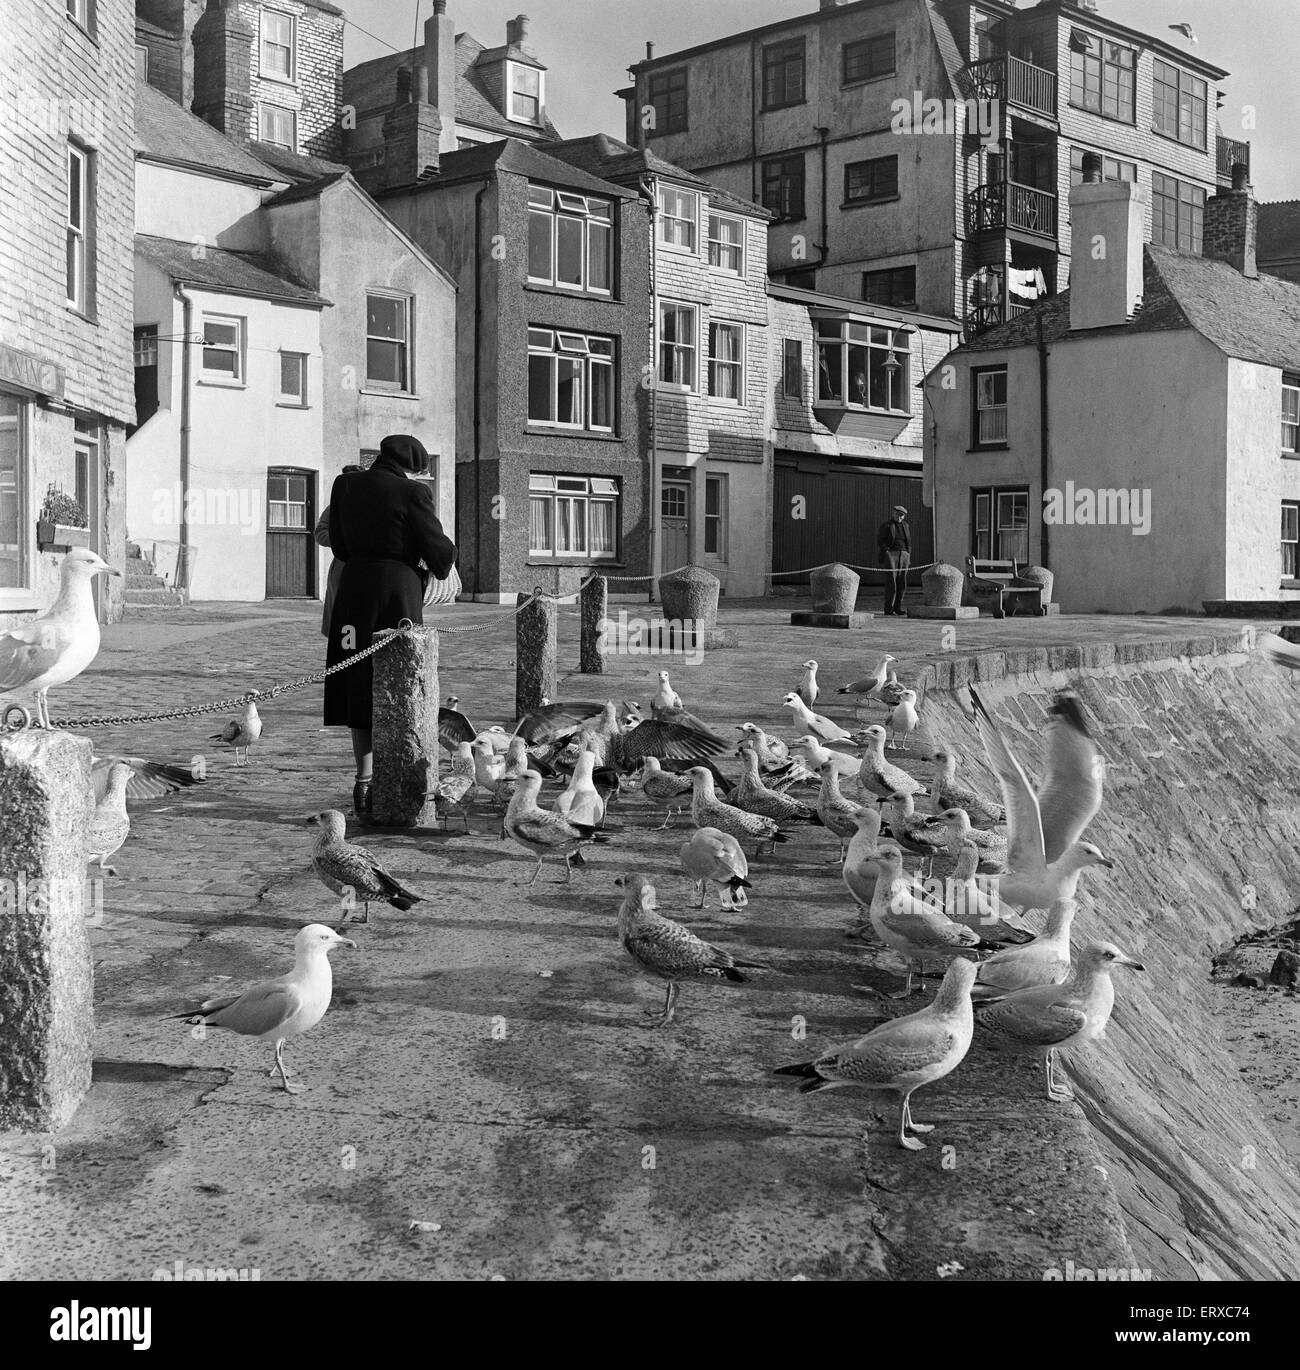 A general view of The Wharf, St Ives, Cornwall. 15th February 1954. - Stock Image